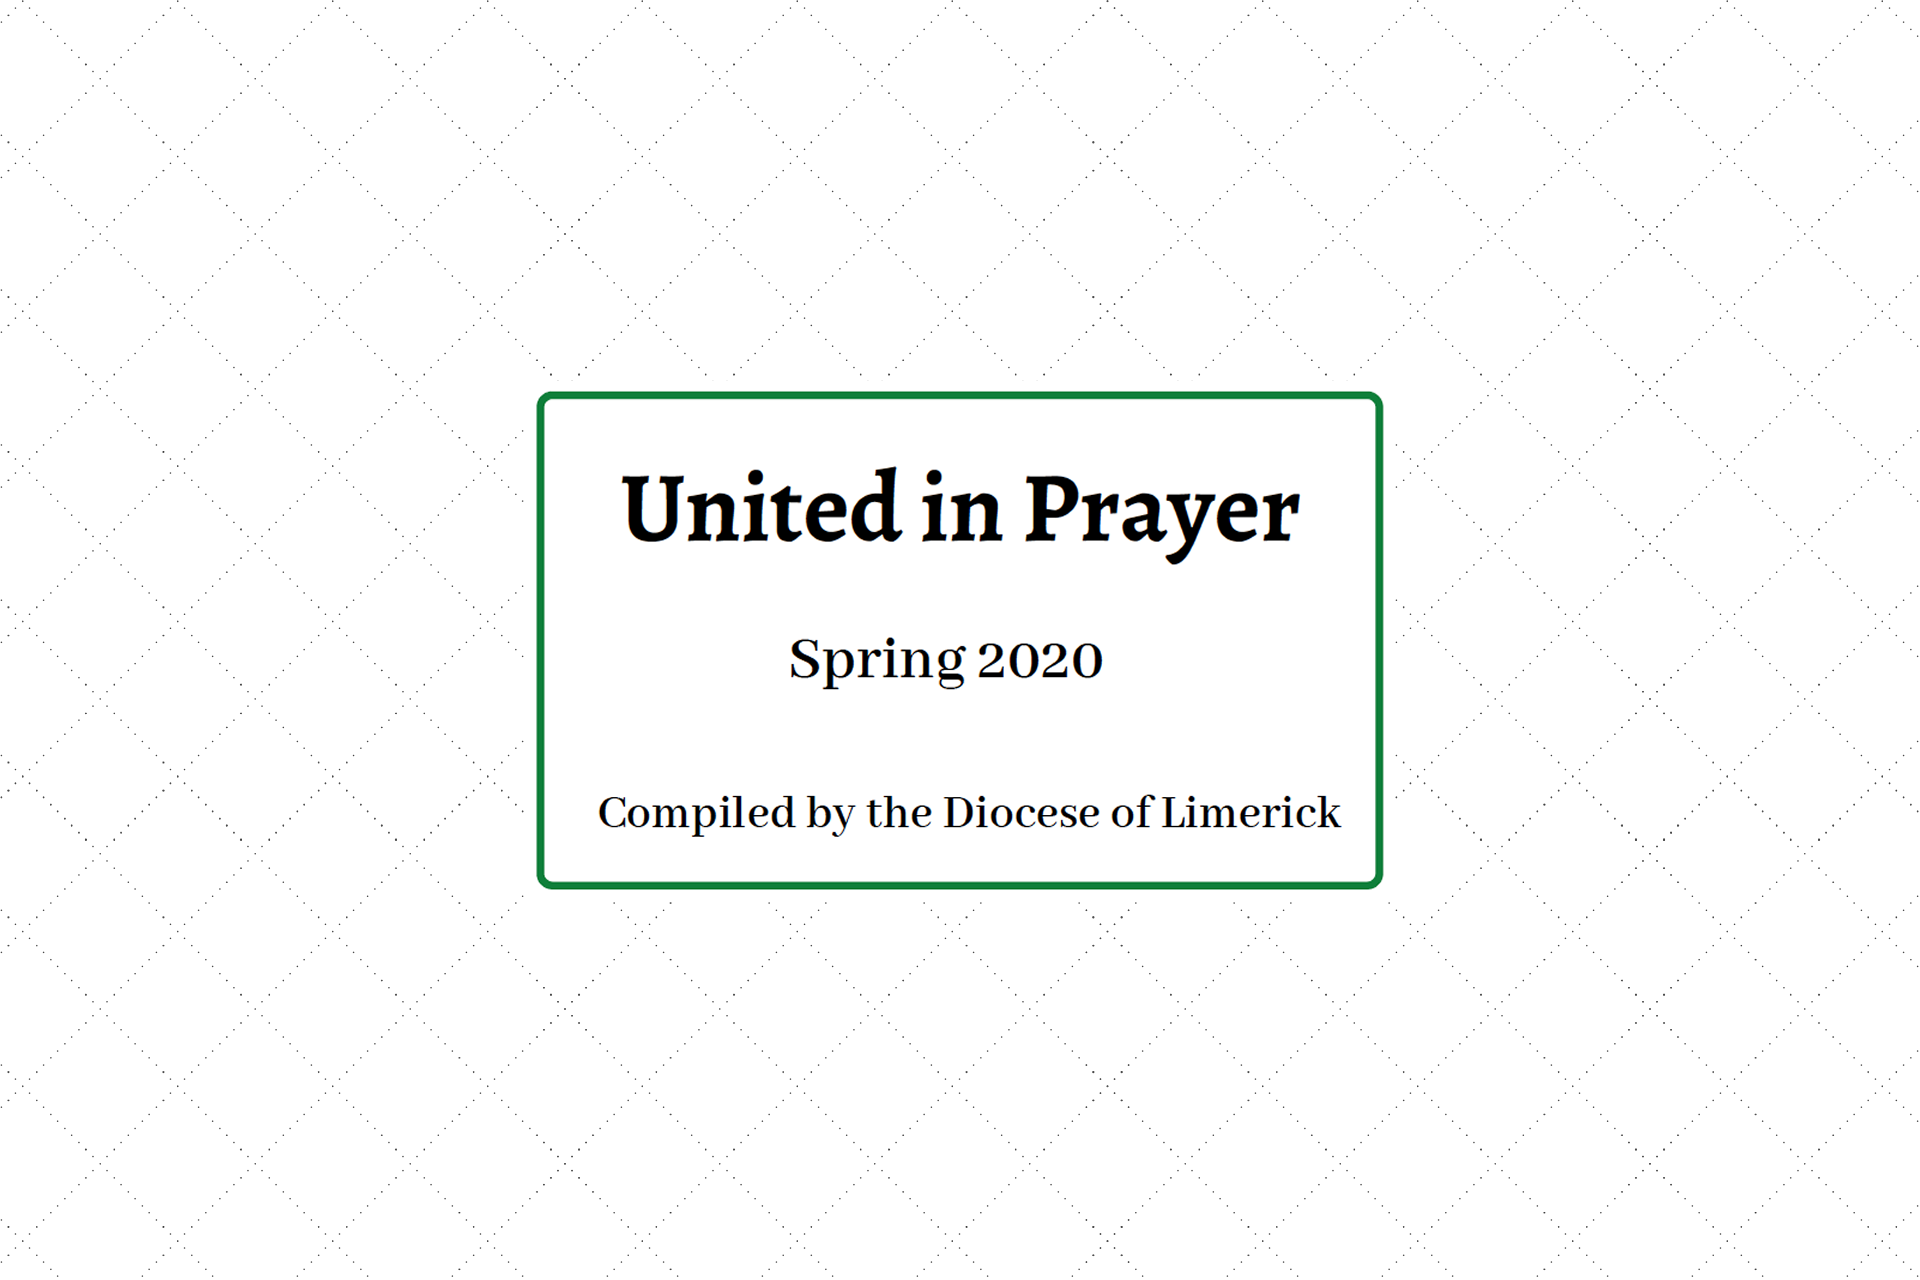 United in Prayer - A Booklet of Prayers